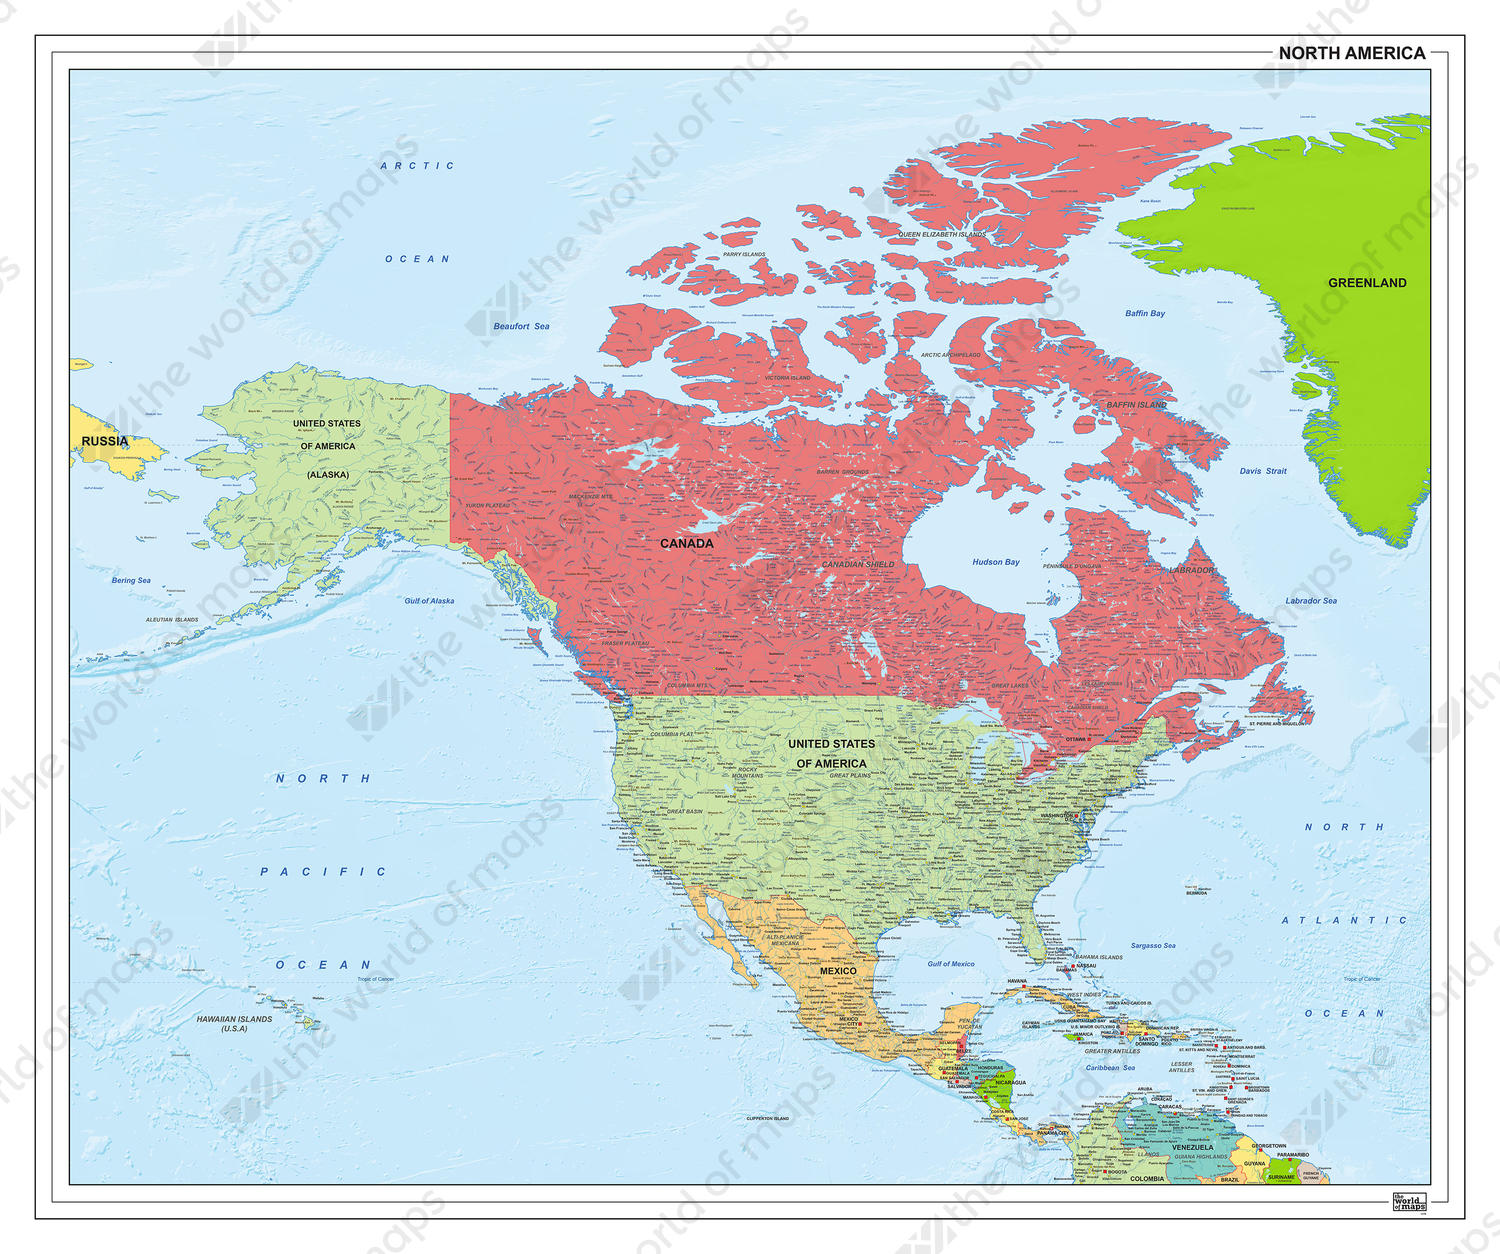 Picture of: Political Digital Map Of North America 1279 The World Of Maps Com